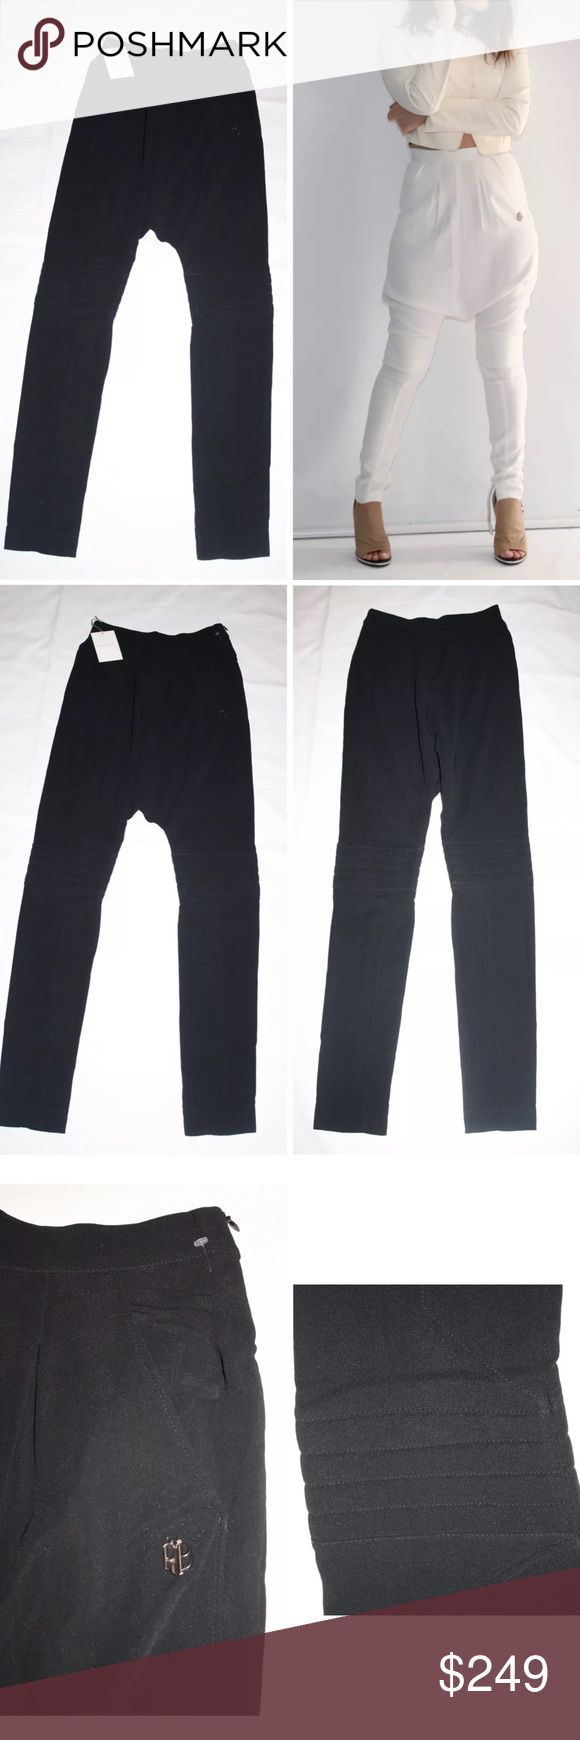 PIERRE BALMAIN HAREM BIKER TROUSER SKINNY PANTS Authentic Pierre Balmain Harem Biker Trouser in black only shown in Ivory to display the fit $990 retail New with tags! Harem biker trouser in black from Pierre Balmain. These skinny leg harem trousers feature a defined waist, two side pockets, & a pleated front waist. Has a dropped crotch, a padded knee with striped detail, a concealed side zip, and tonal seam stitching.  Designer Size: 24/FR38 would fit US size small best: high rise waist…